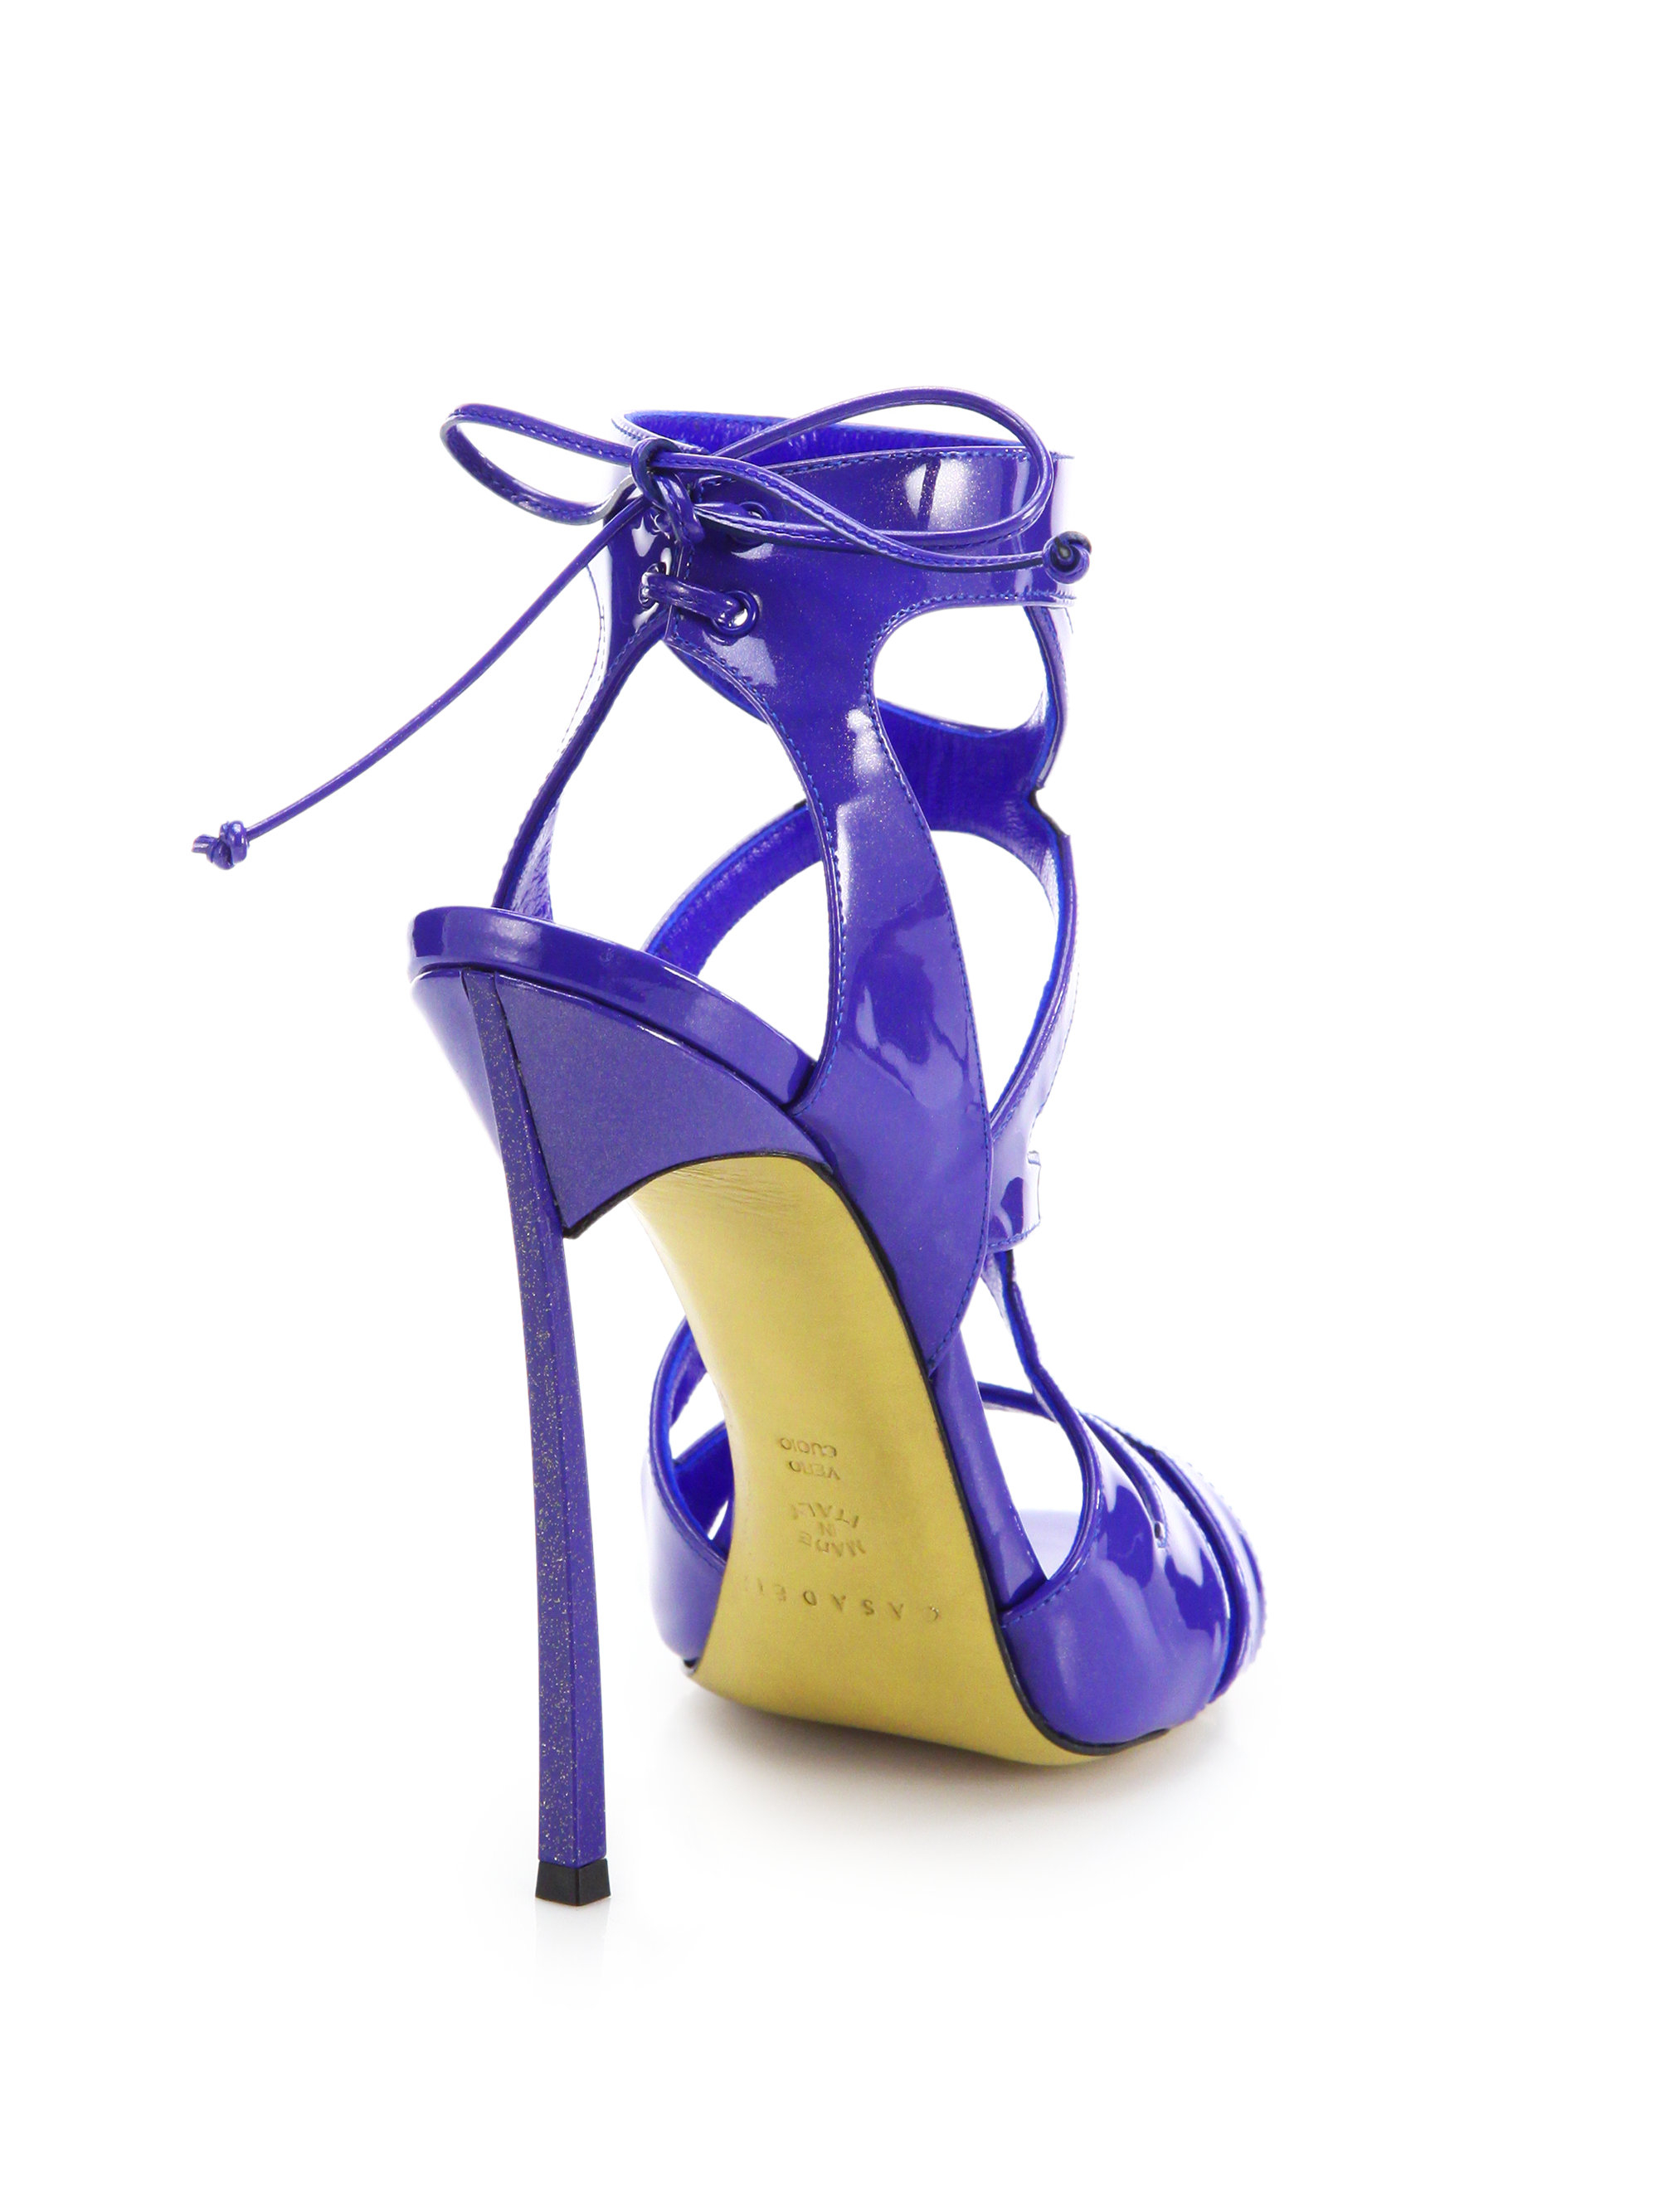 New violet pumps shoes from a guest 9